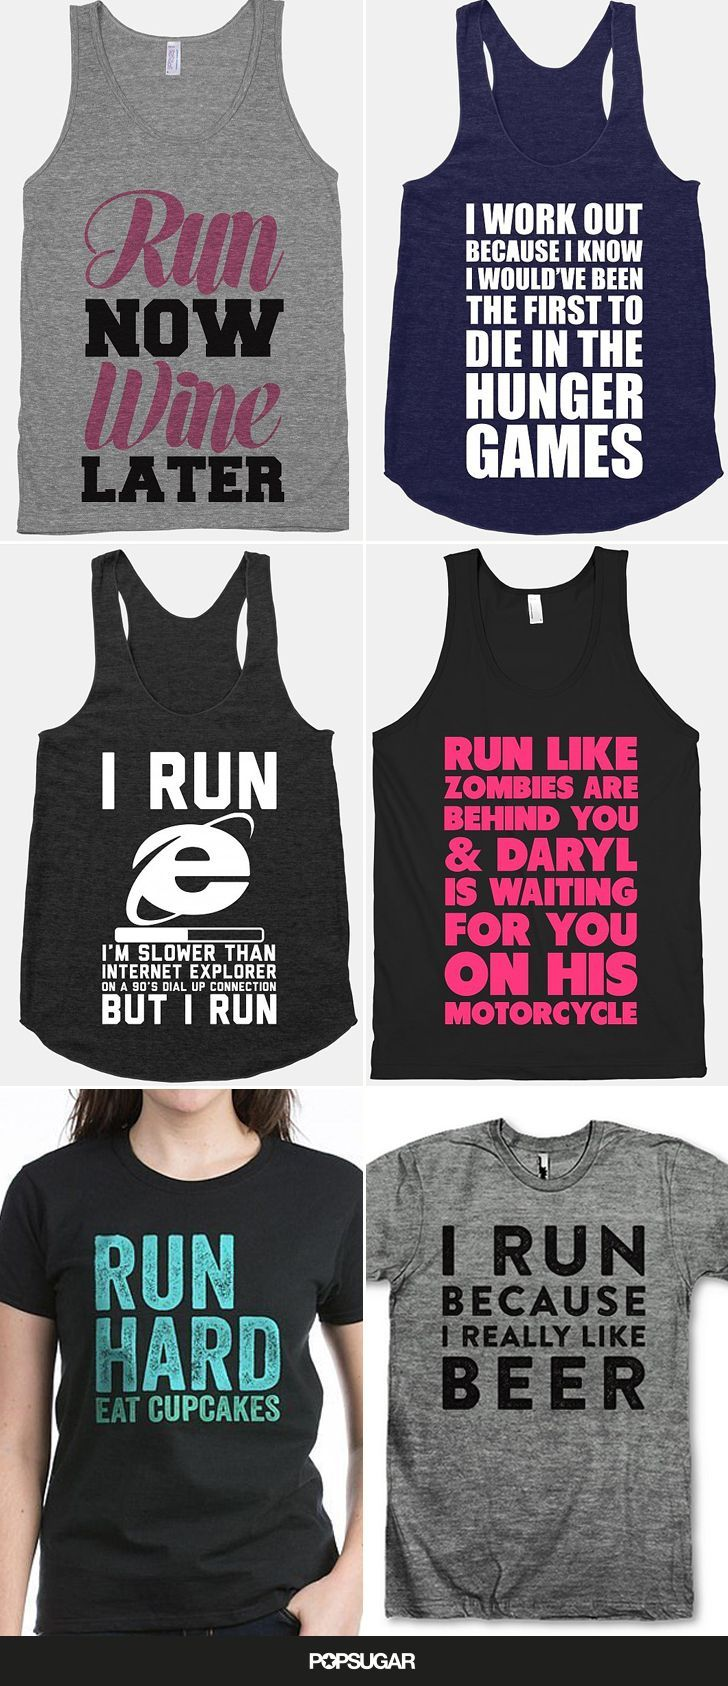 We want all these hilarious running tops!